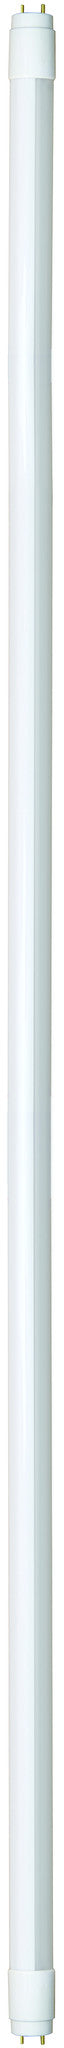 167369 - EcoWatts - Tube LED T8 G13 60cm 10W 4000K 900Lm